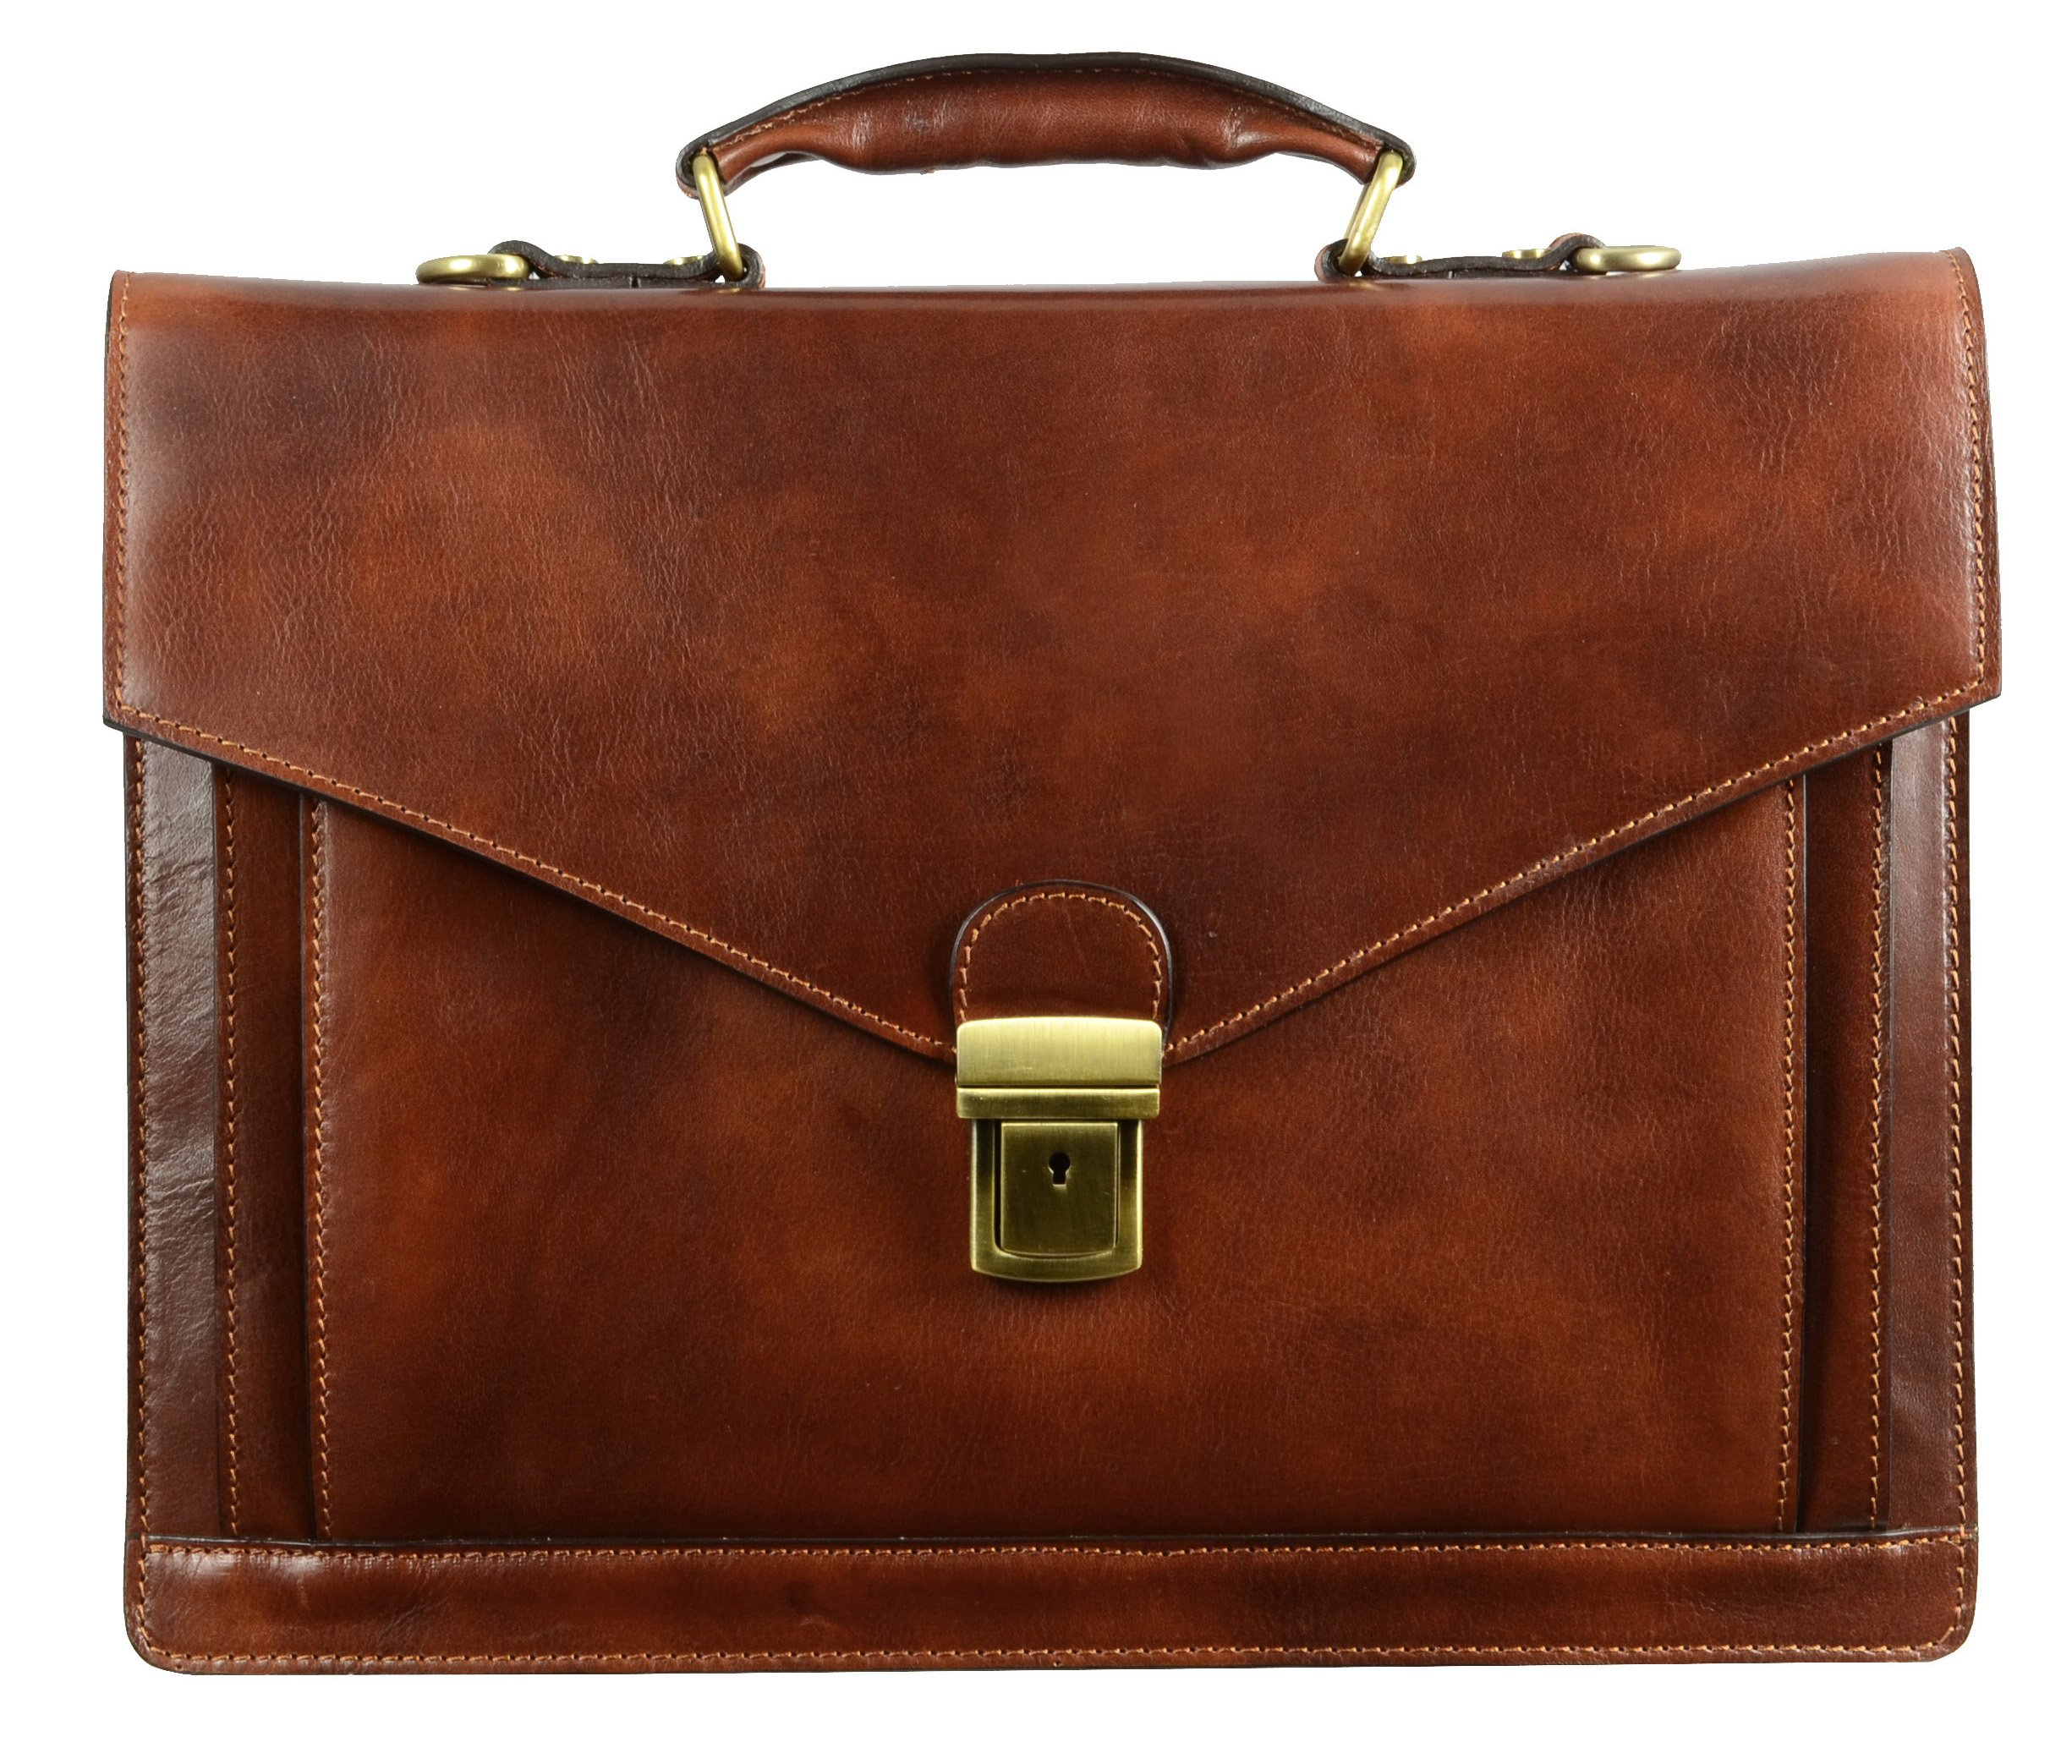 Full Grain Leather Briefcase Handmade Laptop Bag Medium Attache Unisex Classic Style - Time Resistance (Dark Brown)